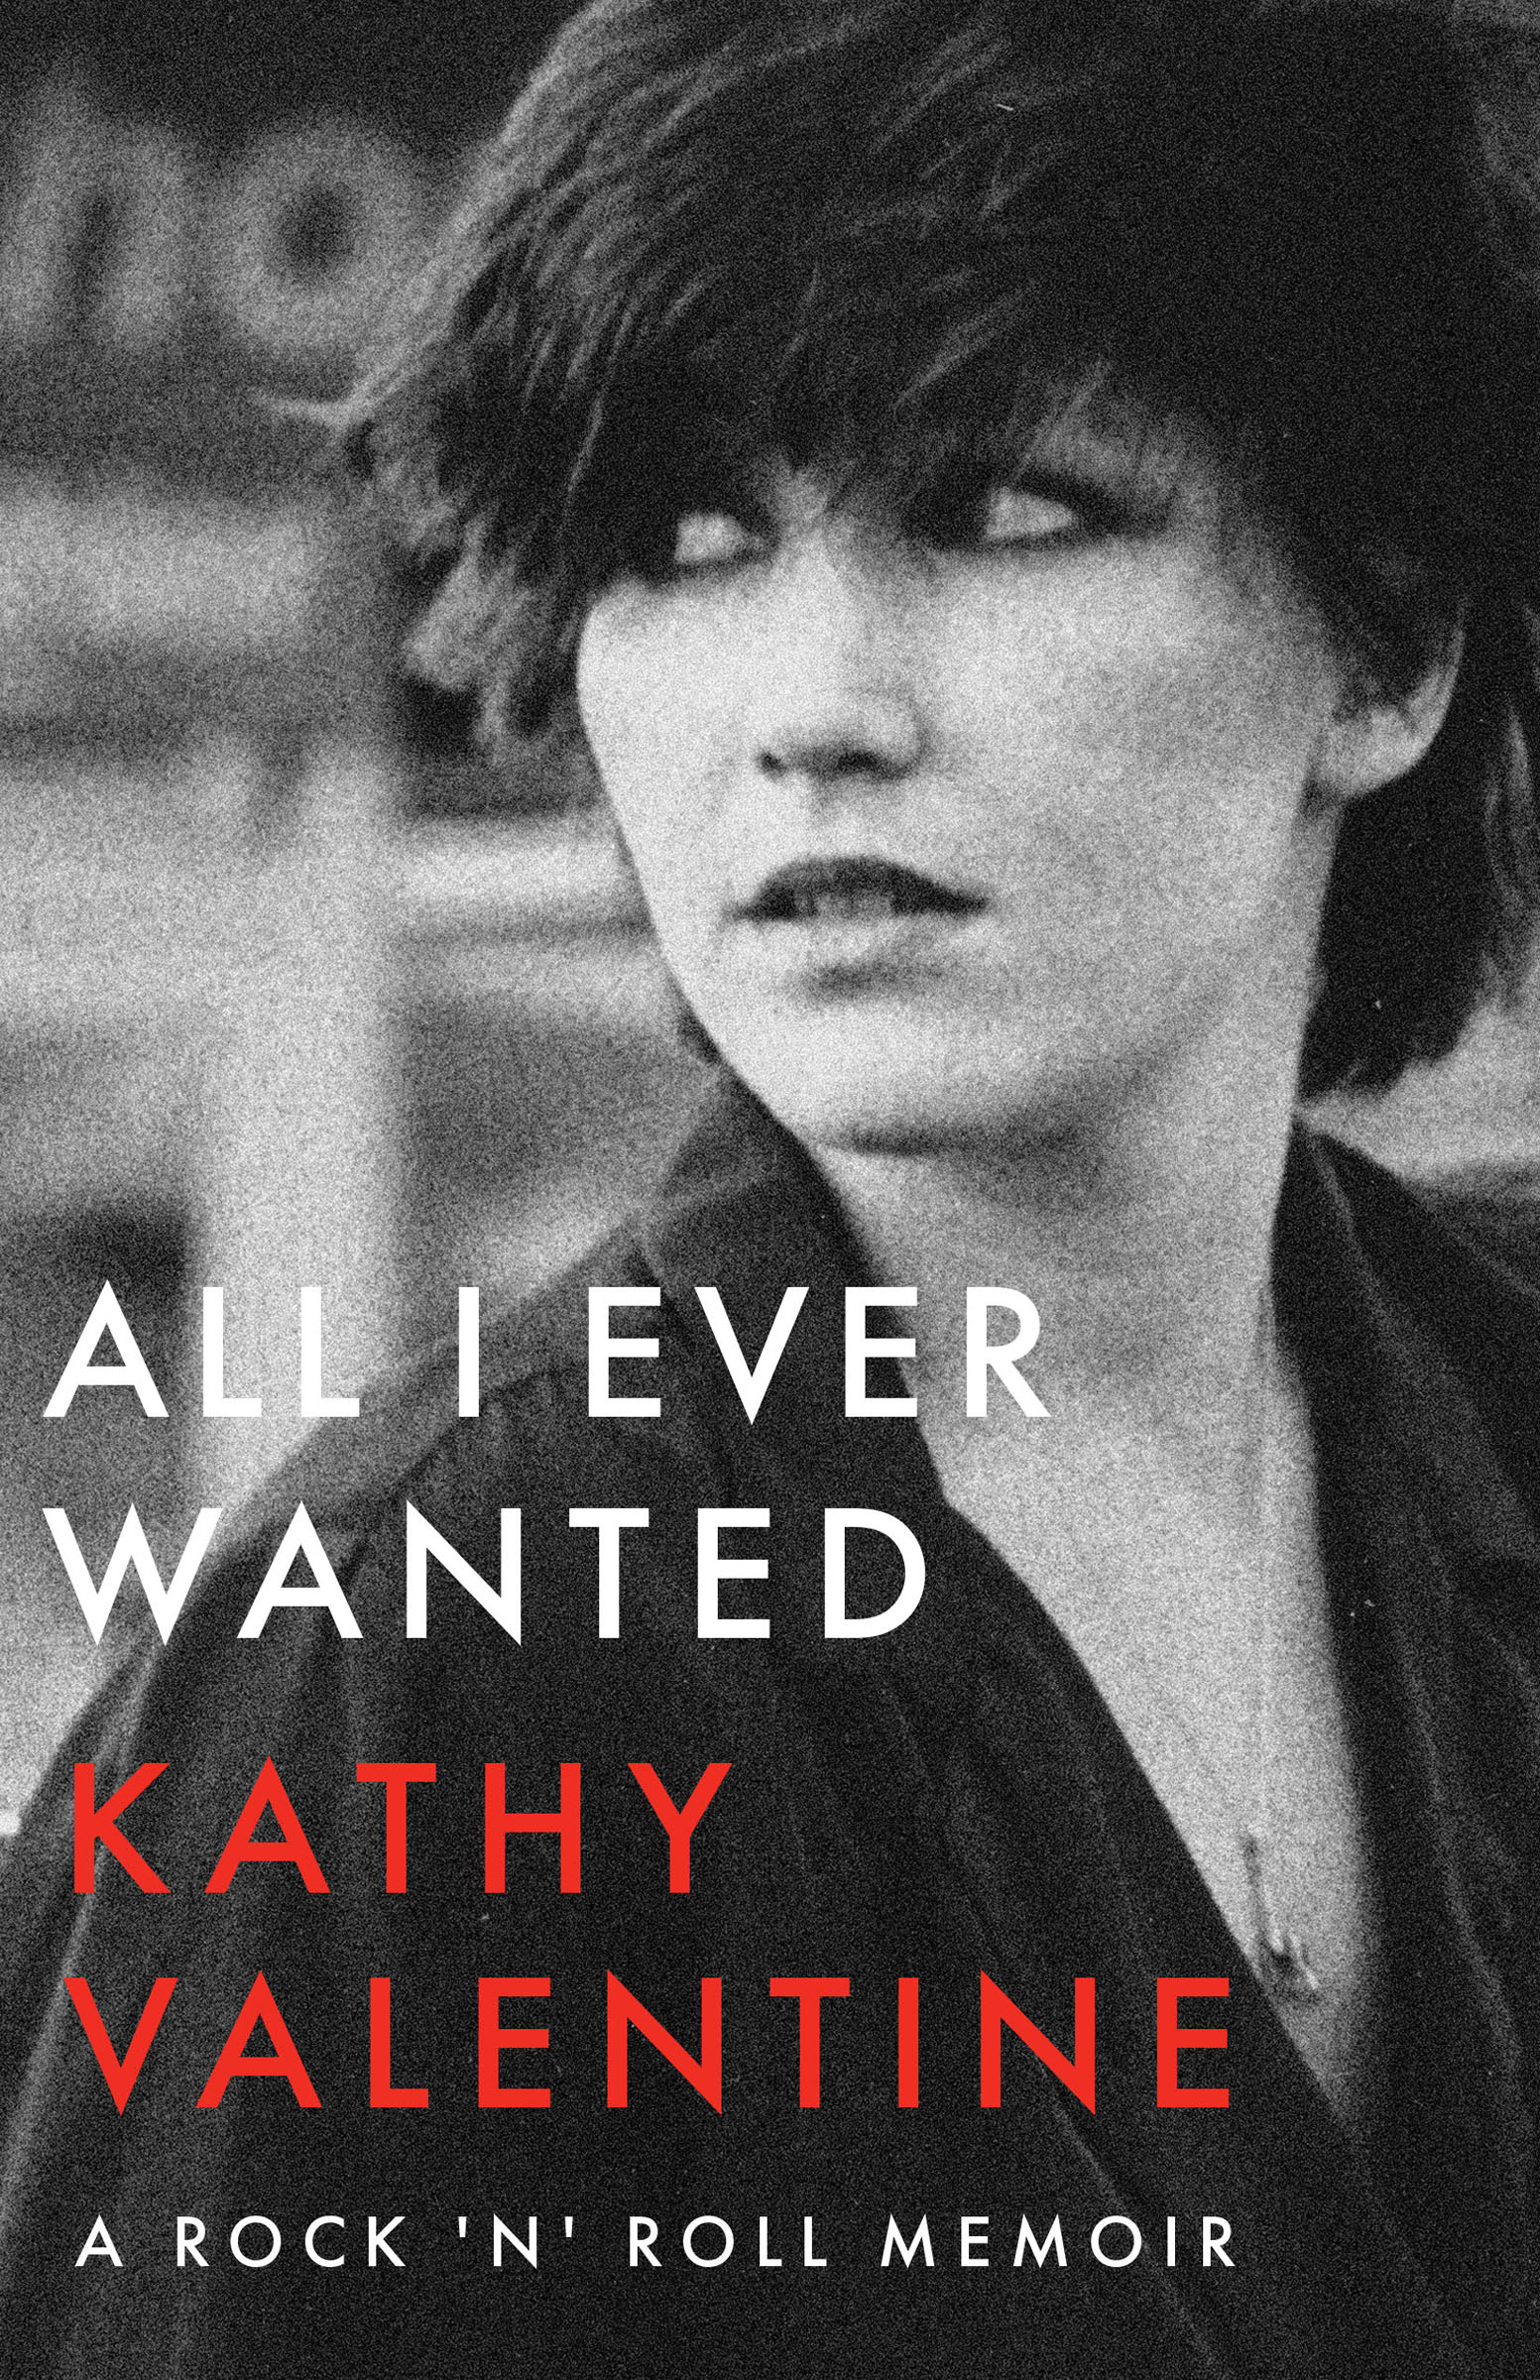 All I ever wanted [electronic resource (downloadable eBook)] : a rock 'n' roll memoir